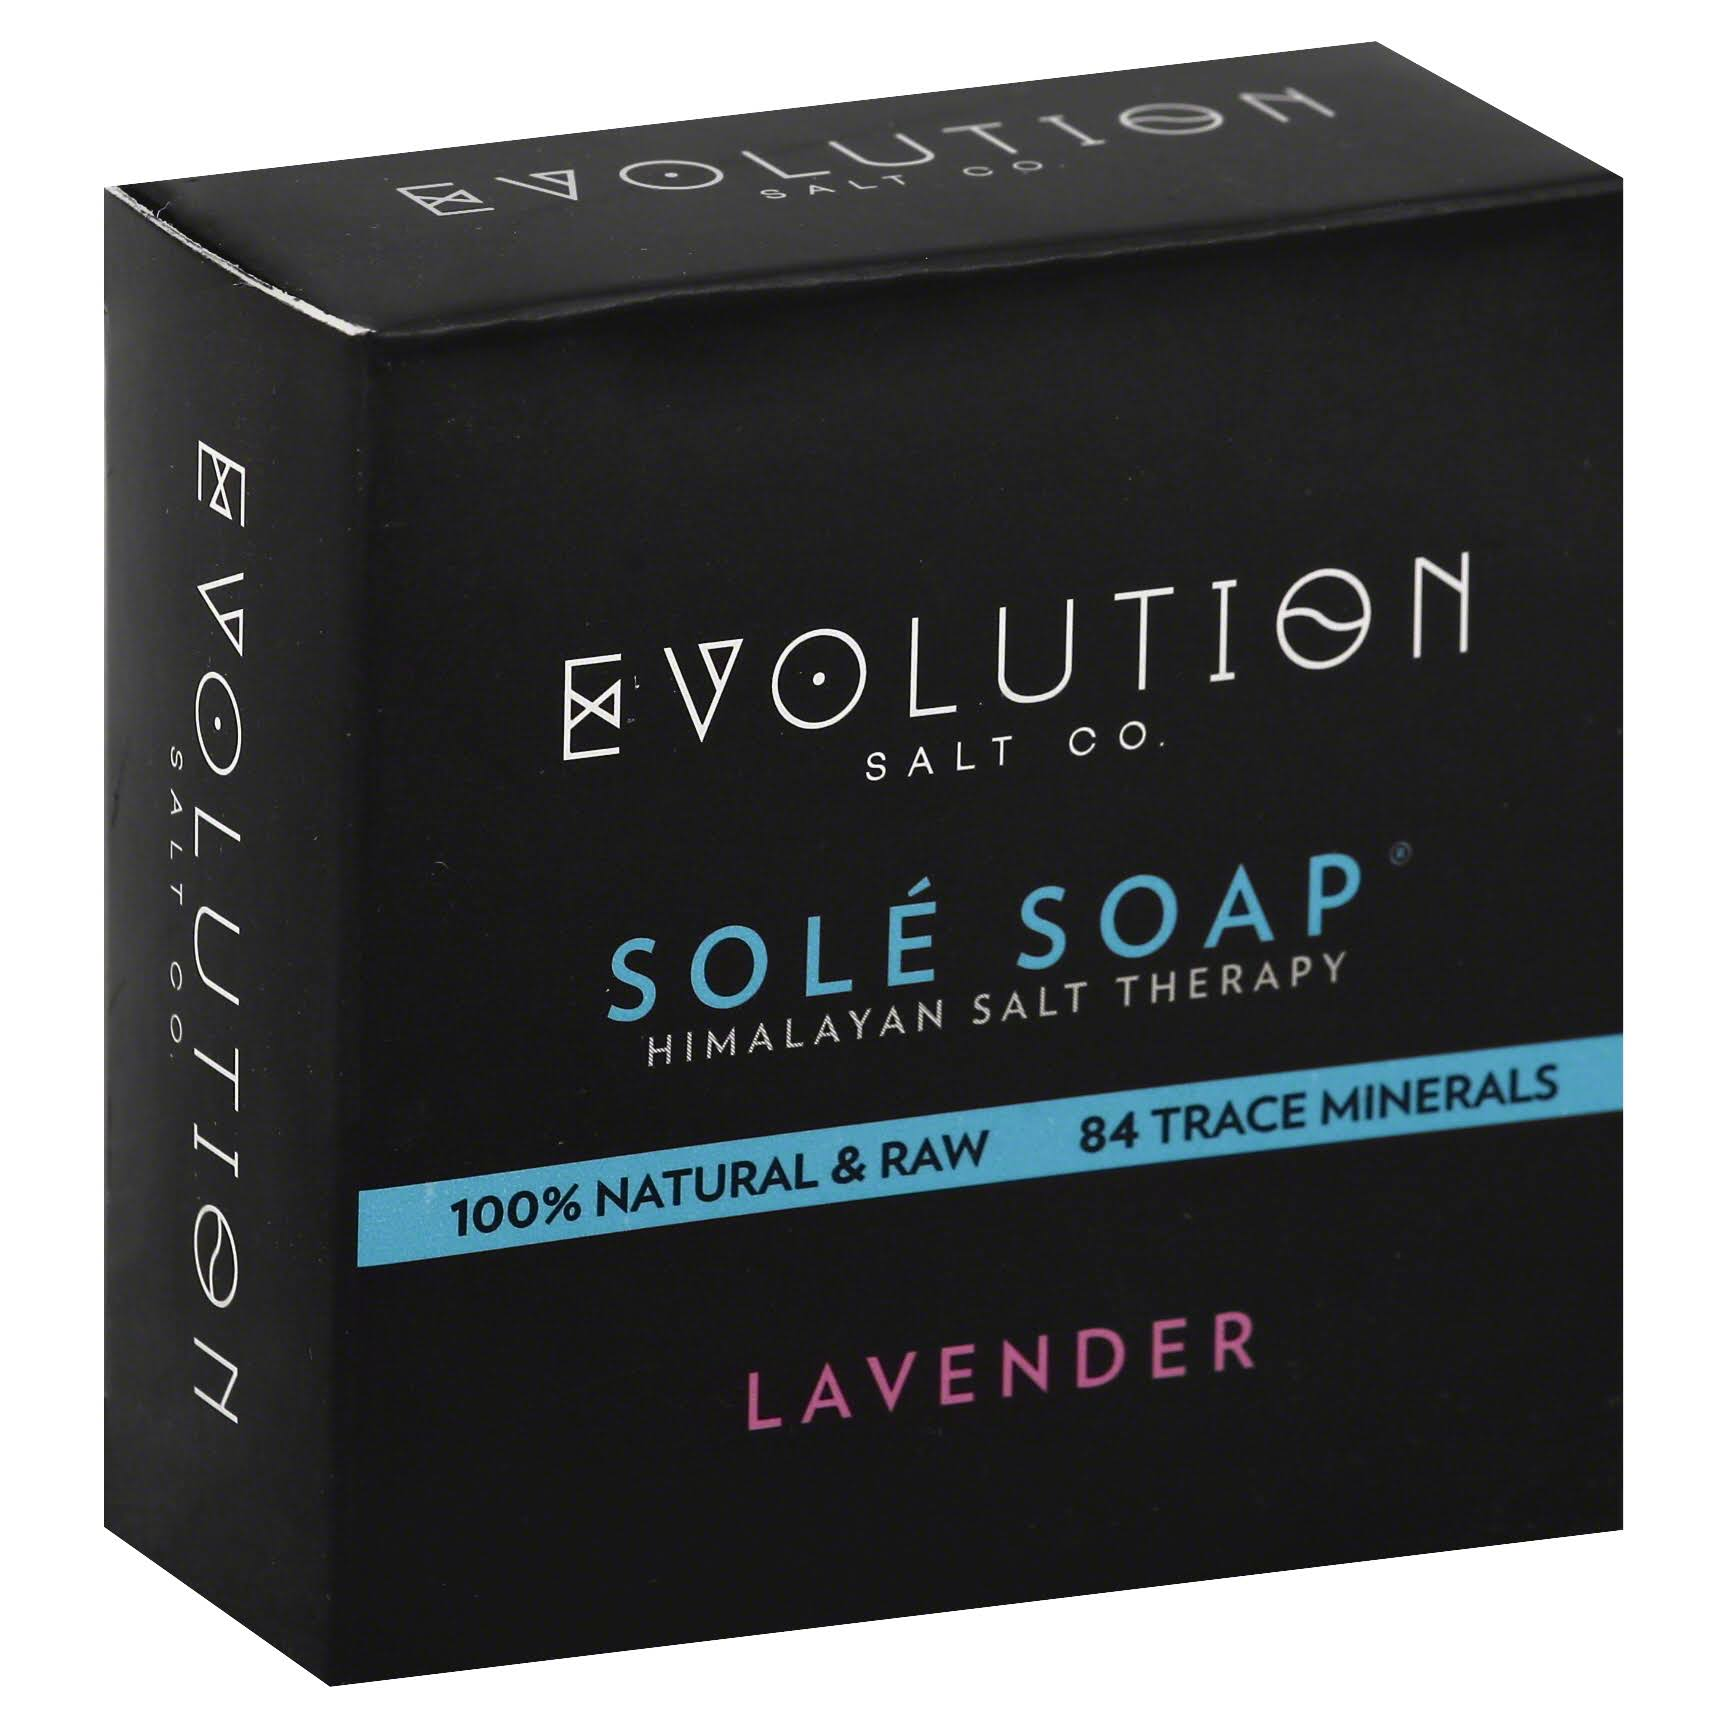 Evolution Himalayan Salt Sole Soap - Lavender, 4.5oz